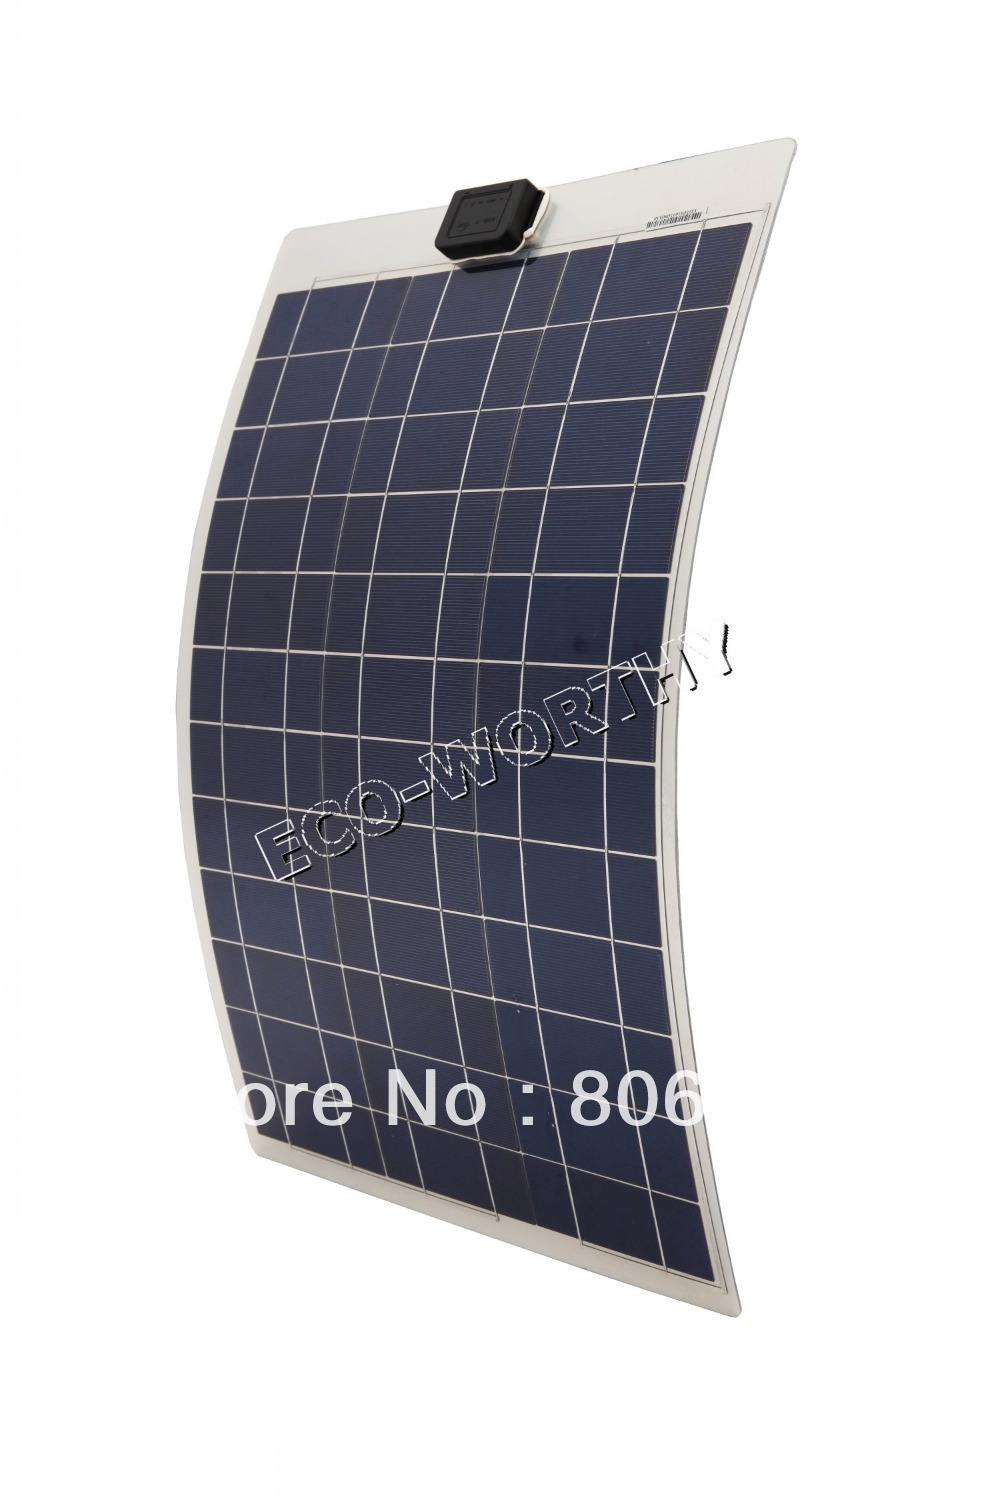 50W 12V solar panel ,soalr flexible  panel, poly crystaline cells module For 12v battery,free shipping 550mm 20m diy solar panel eva film sheet for pv cells encapsulation